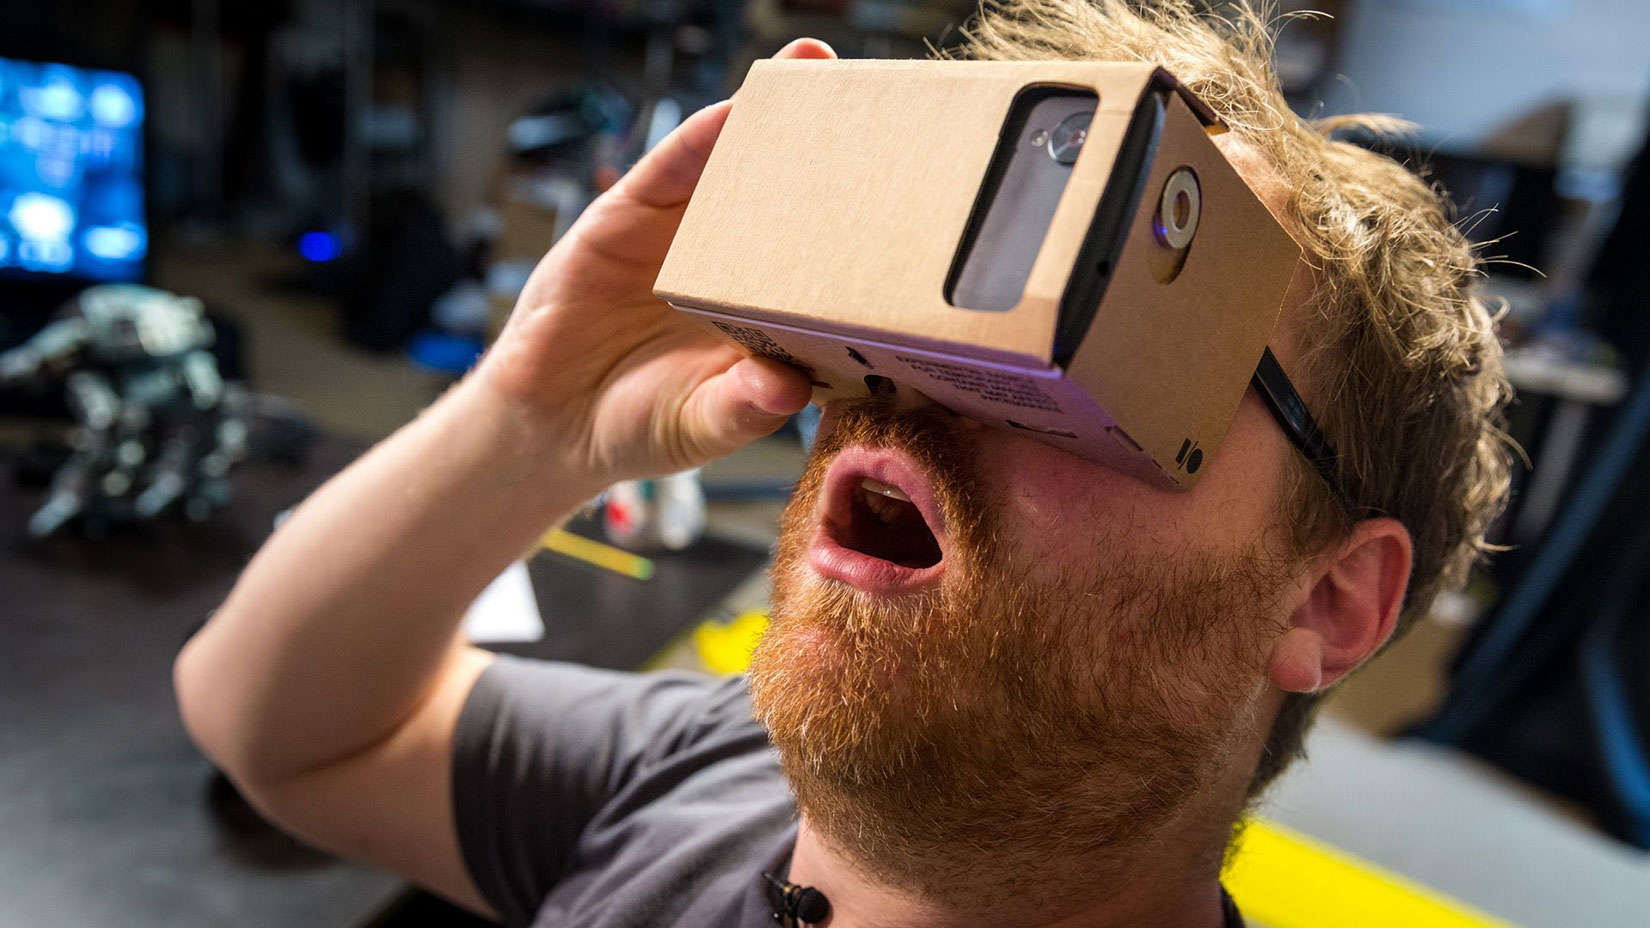 Virtual Reality experiences can be had with your smartphone and cardboard viewer.